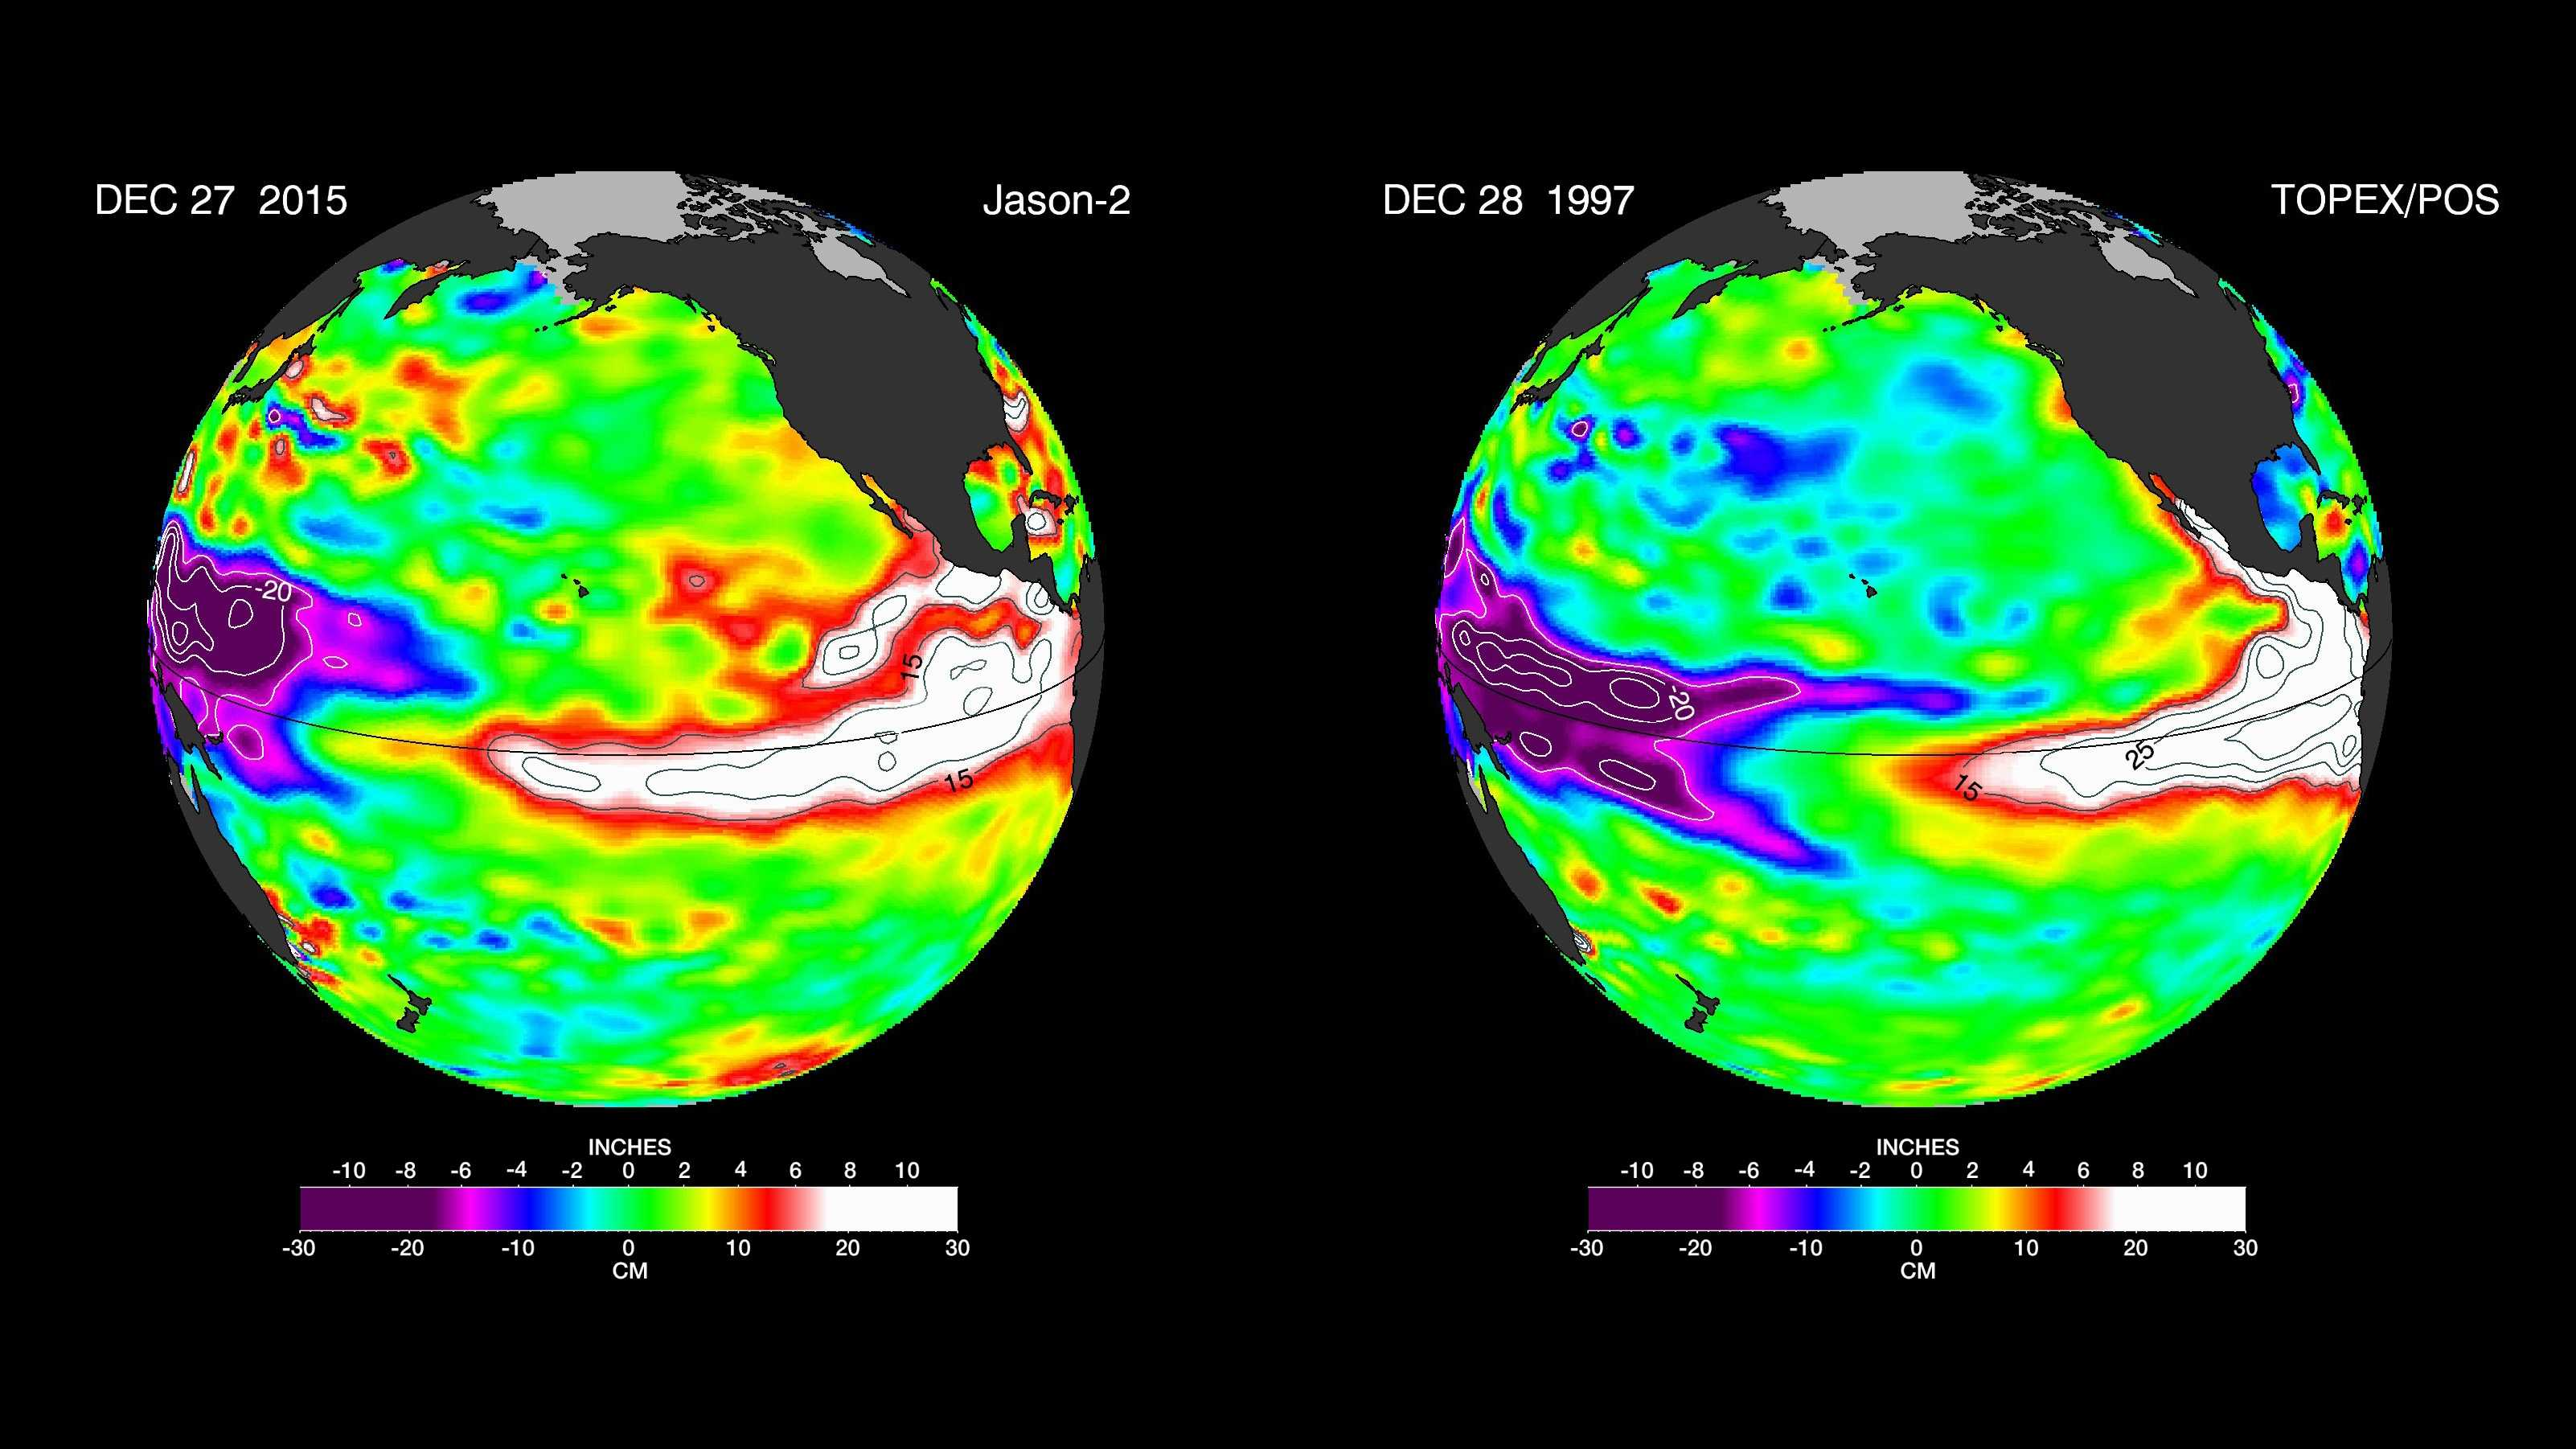 The latest satellite image of Pacific sea surface heights from Jason-2 (left) differs slightly from one 18 years ago from Topex/Poseidon (right). In Dec. 1997, sea surface height was more intense and peaked in November. This year the area of high sea levels is less intense but considerably broader.